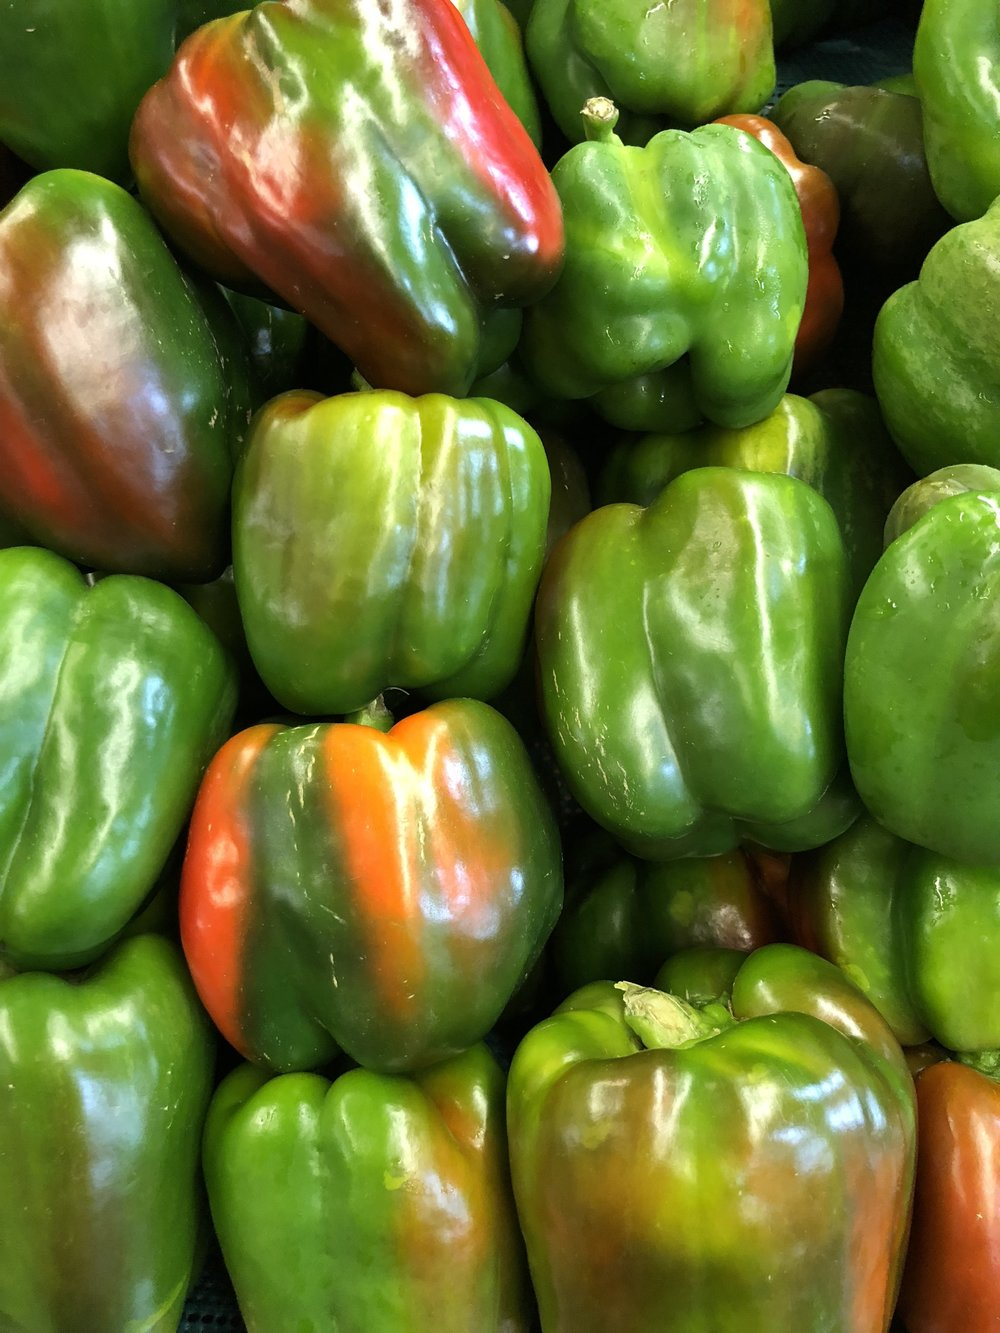 Locally-grown green peppers